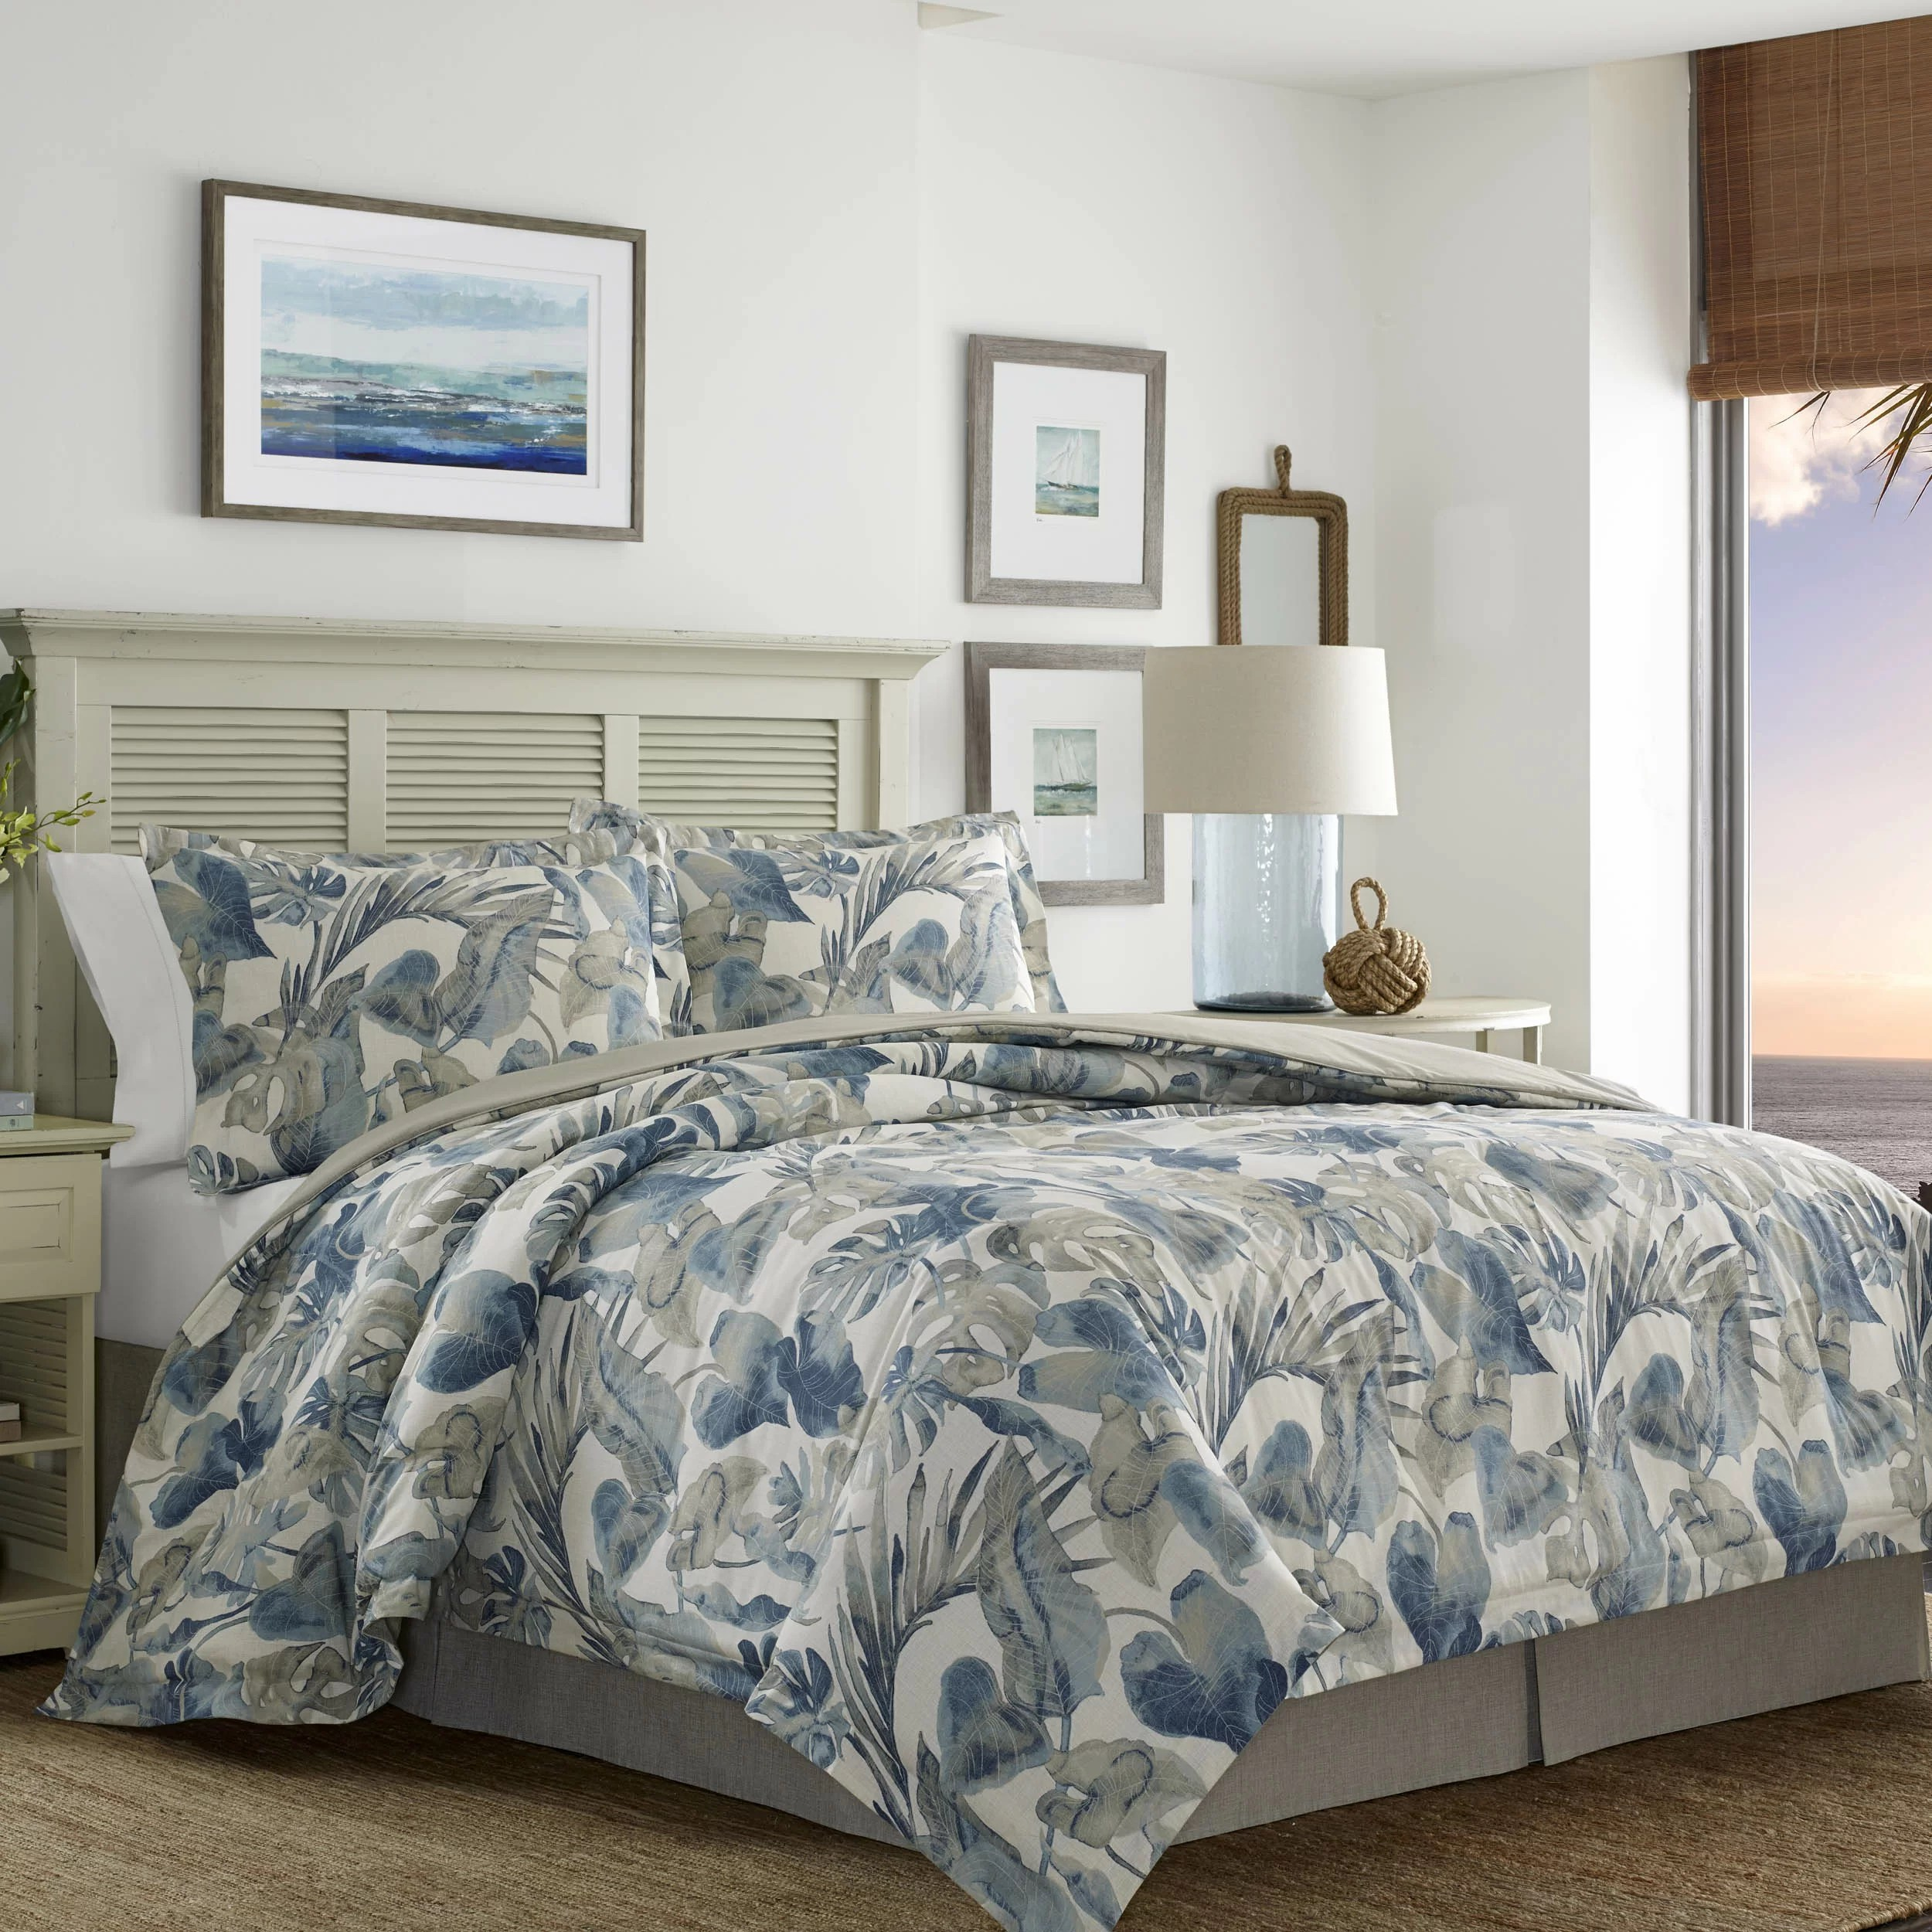 Duvet And Comforter Sets Raw Coast 4 Piece Comforter Set Tommy Bahama Bedding